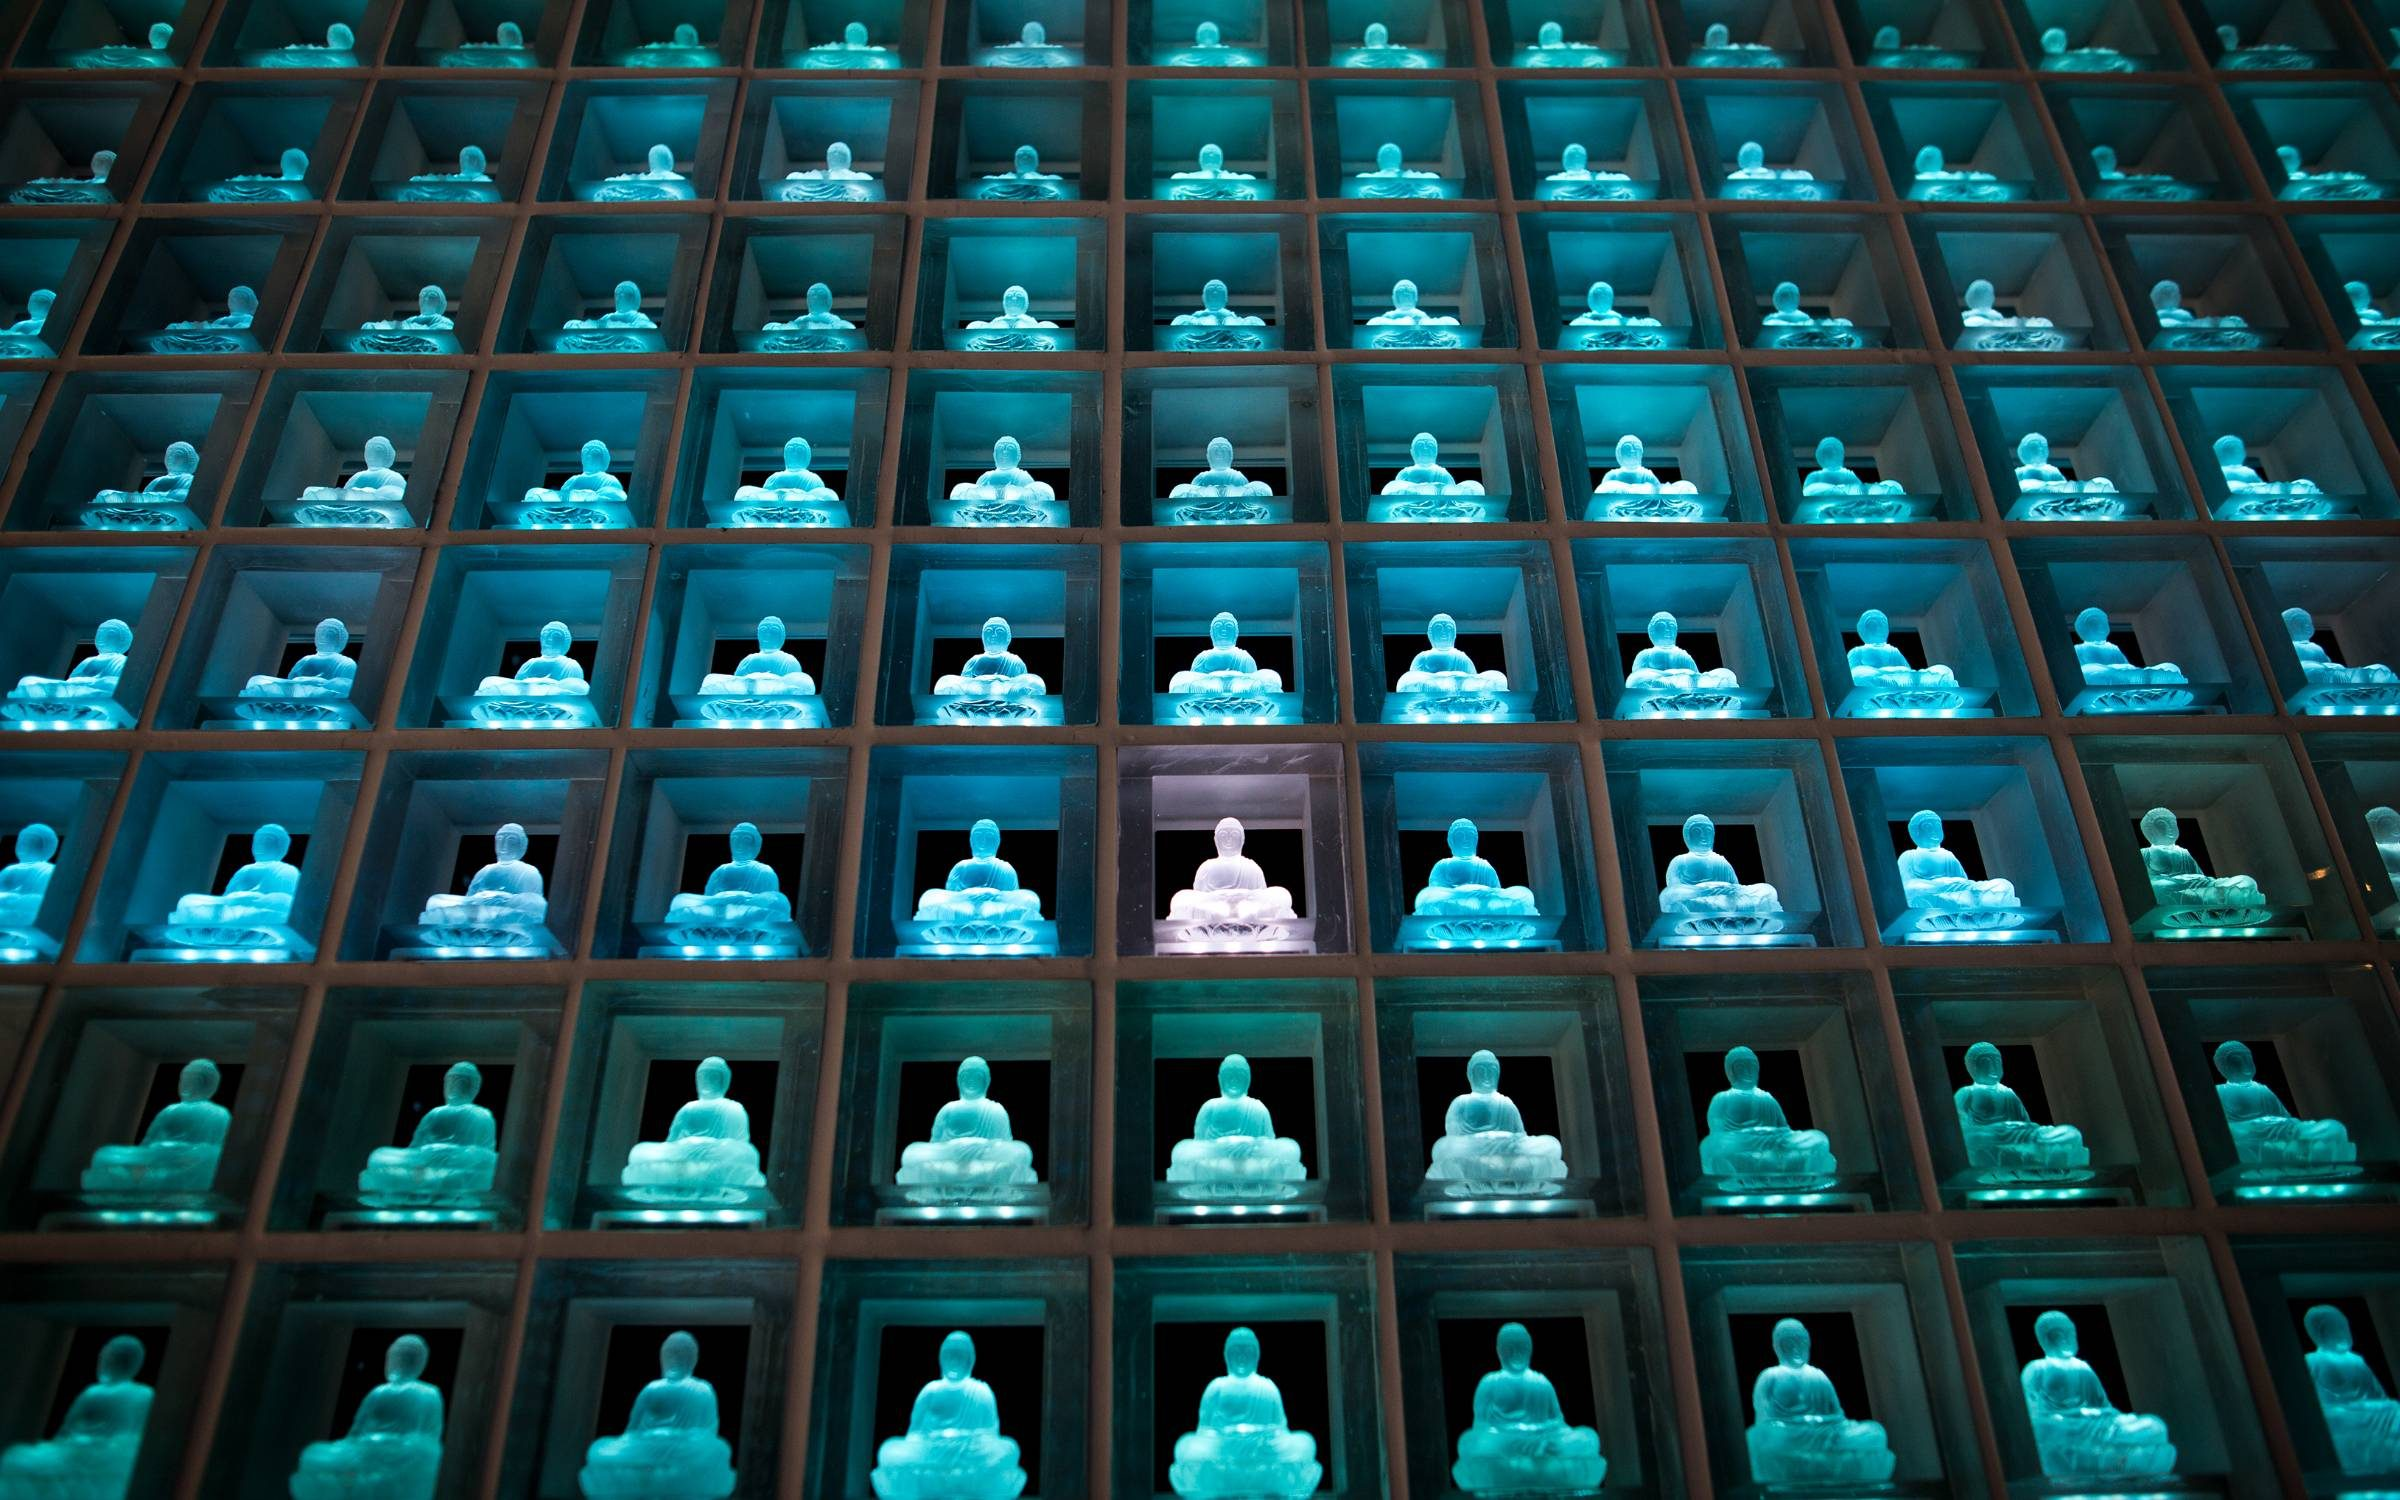 Glass Buddha alters are lit up in Koukokuji temple on July 7, 2016 in Tokyo, Japan. Operated by the Koukokuji buddhist temple, The Ruriden columbarium at the Koukoko-ji Temple houses over 2,046 crystal Buddha statues, each illuminated by high-powered LED lights. Behind each Buddha is a drawer storing people's ashes. An IC card allows the owner of the alter to access the building and lights up the corresponding statue. The ashes are stored for 33 years before being buried below the Ruriden, currently 900 alters are in use as of July 2016. (Photo by Richard Atrero de Guzman/NurPhoto via Getty Images)